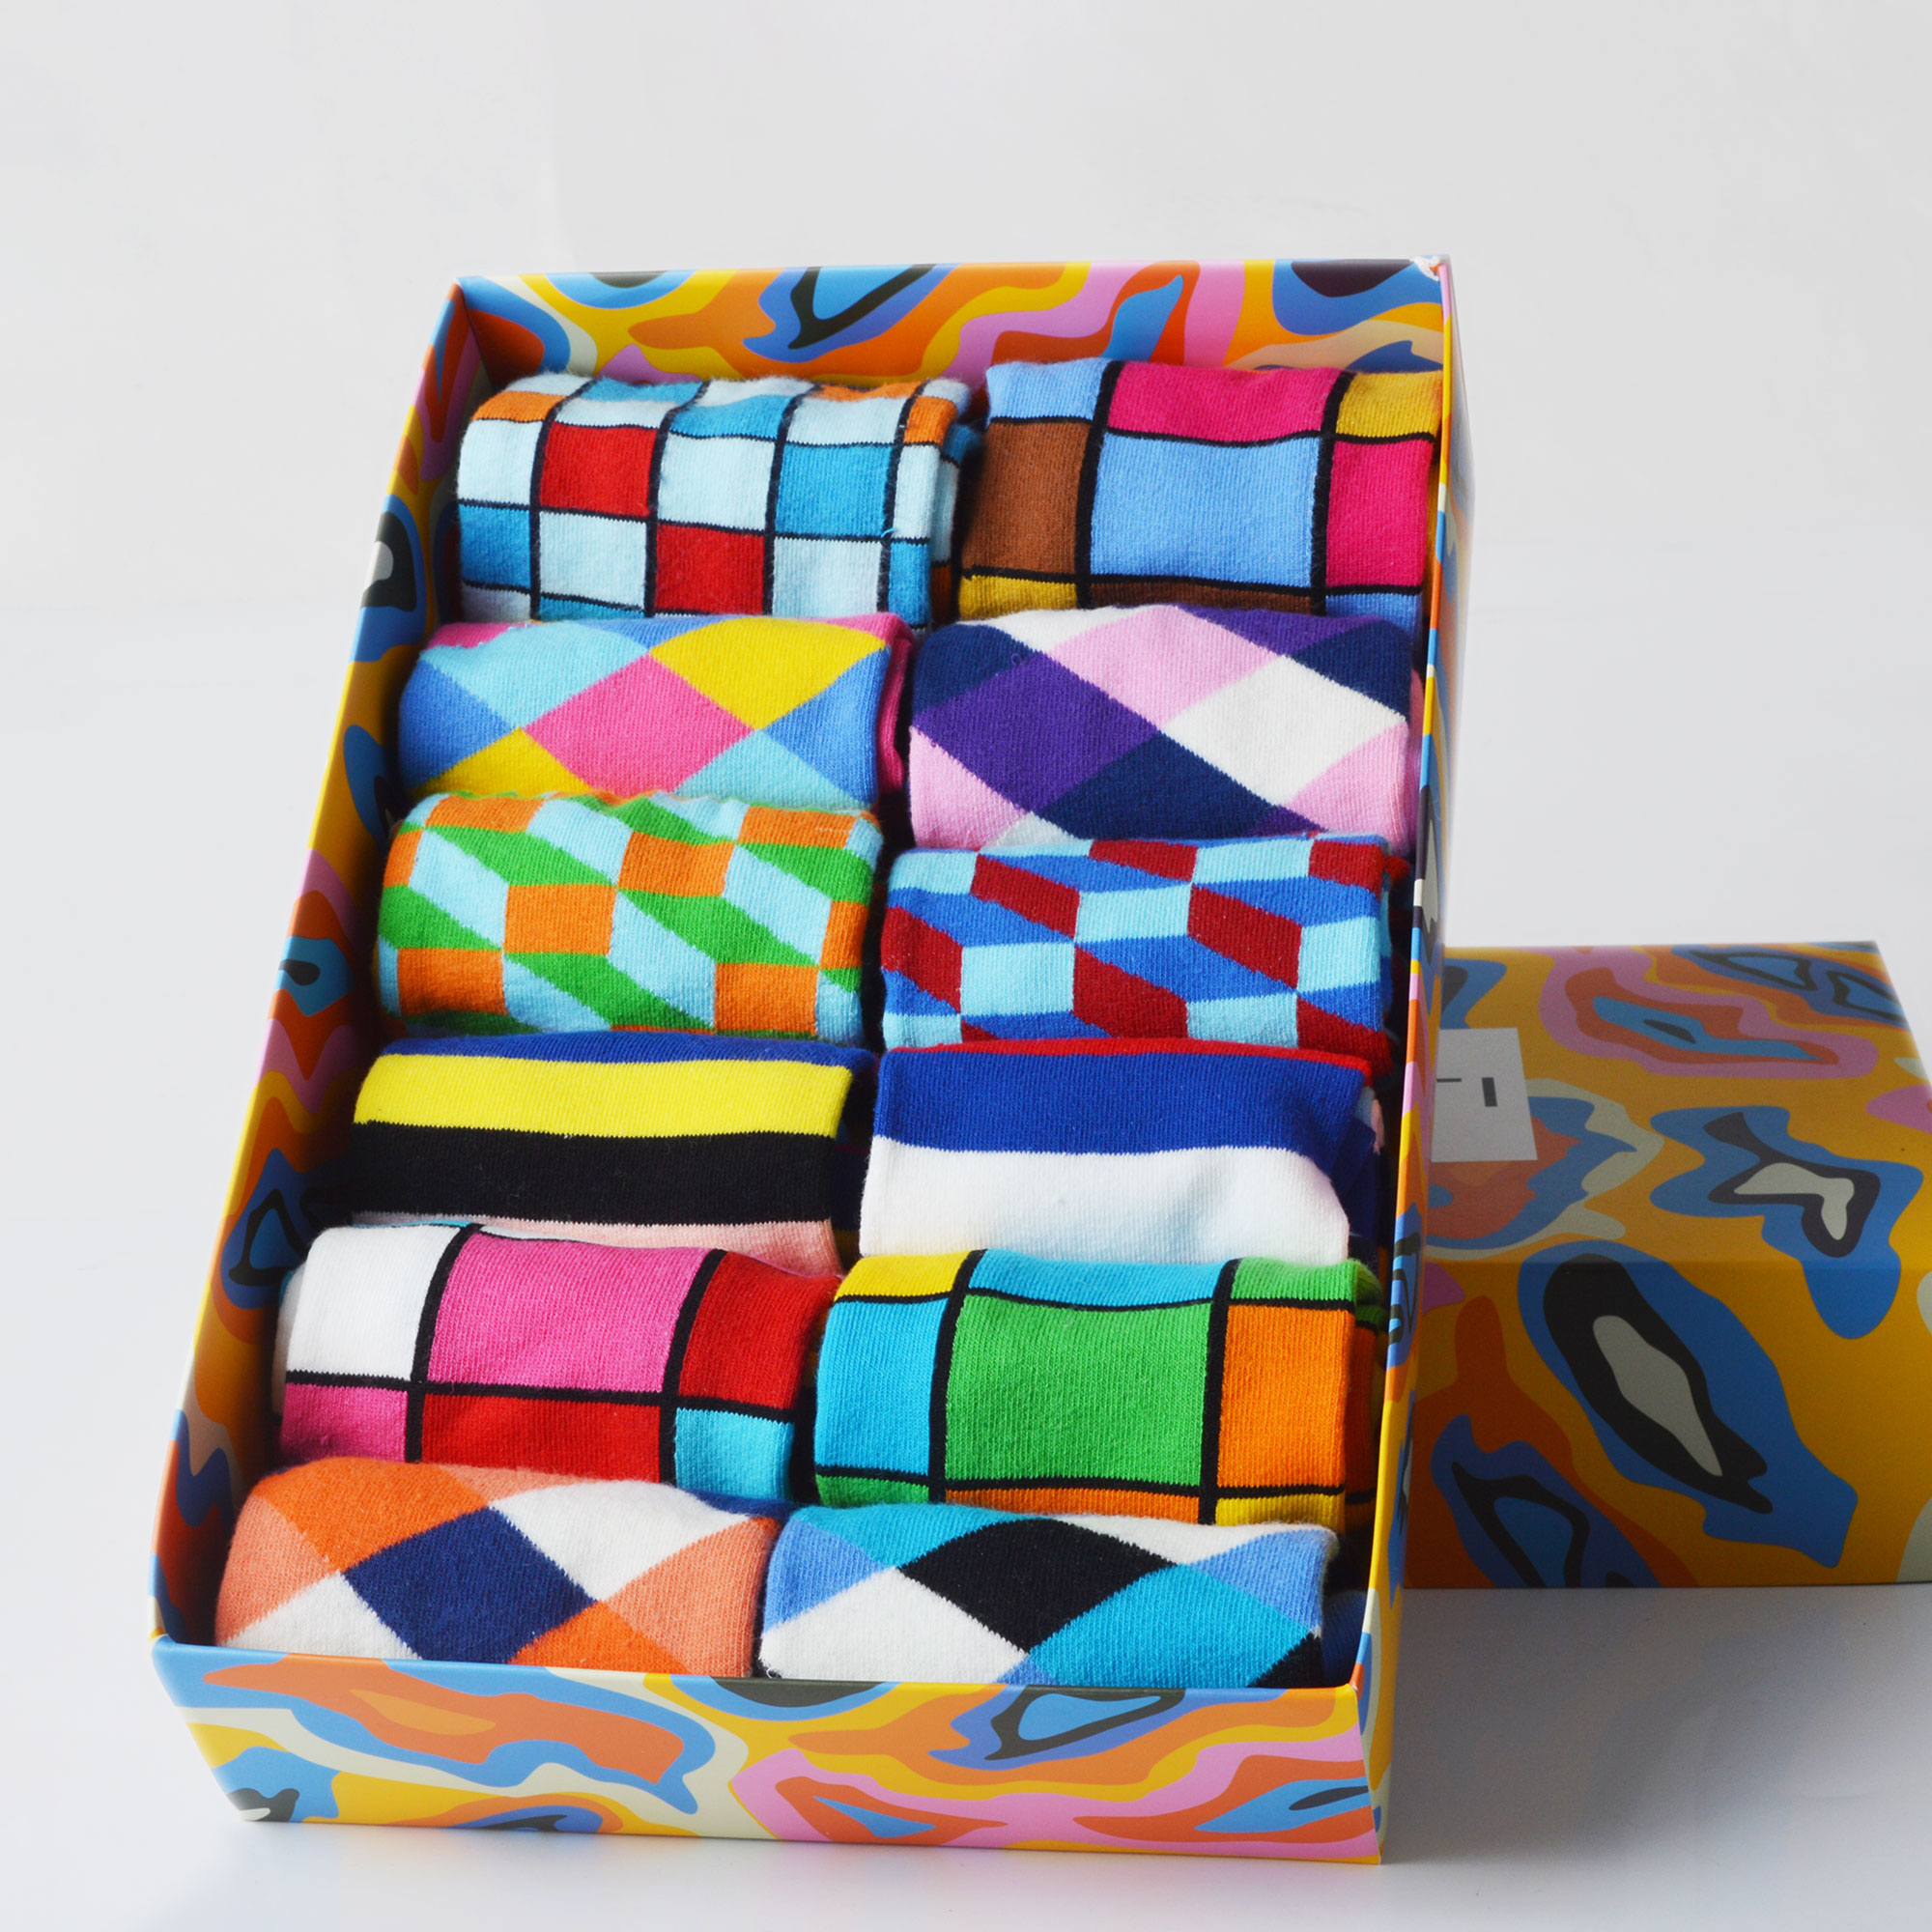 SANZETTI Brand 2020 New Happy Men Socks Bright Colorful Novelty Pattern Dress High Quality Socks Funny Wedding Socks Gift Box